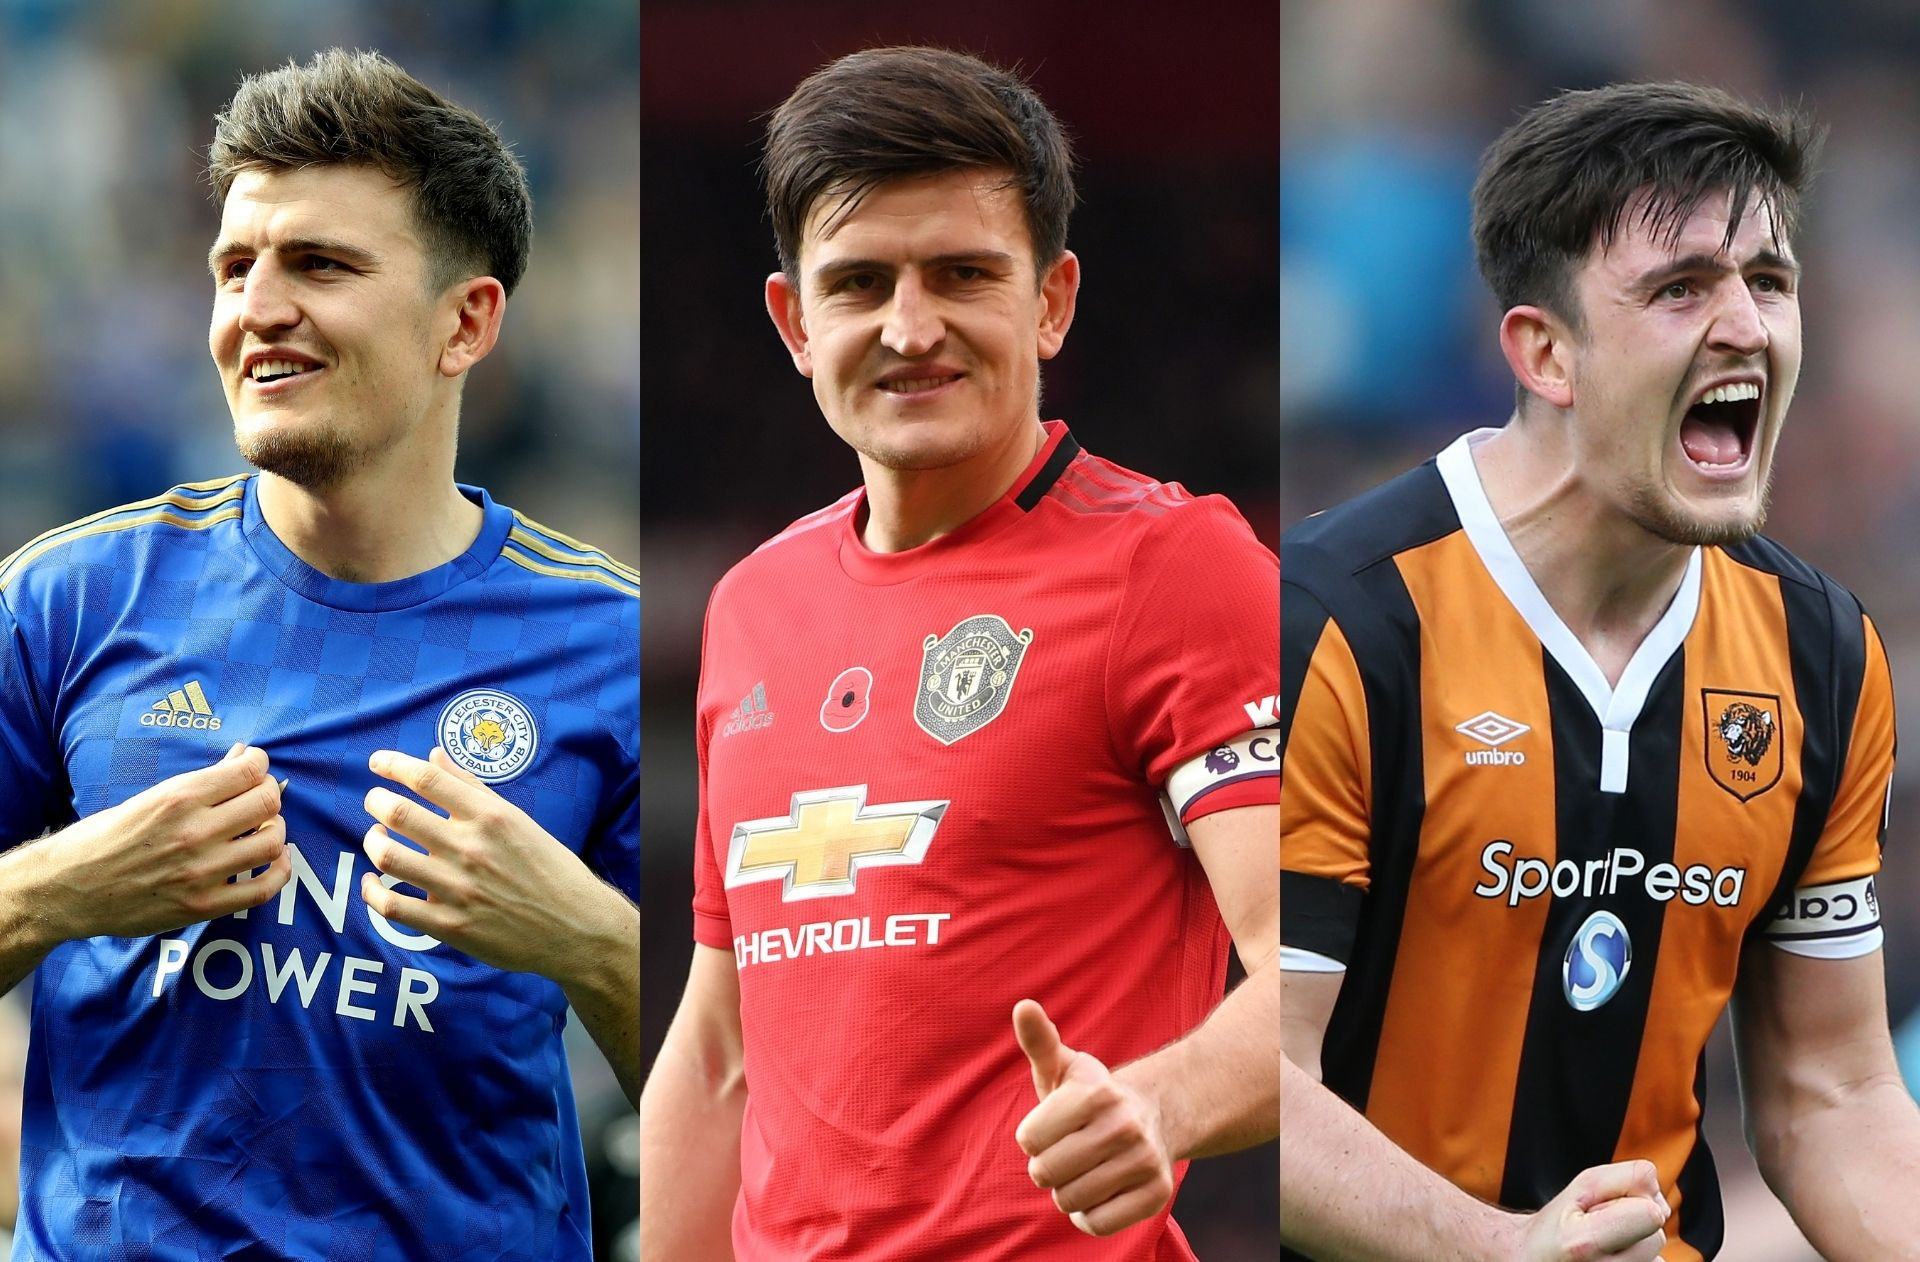 Top 5 career moments of Manchester United captain Harry Maguire